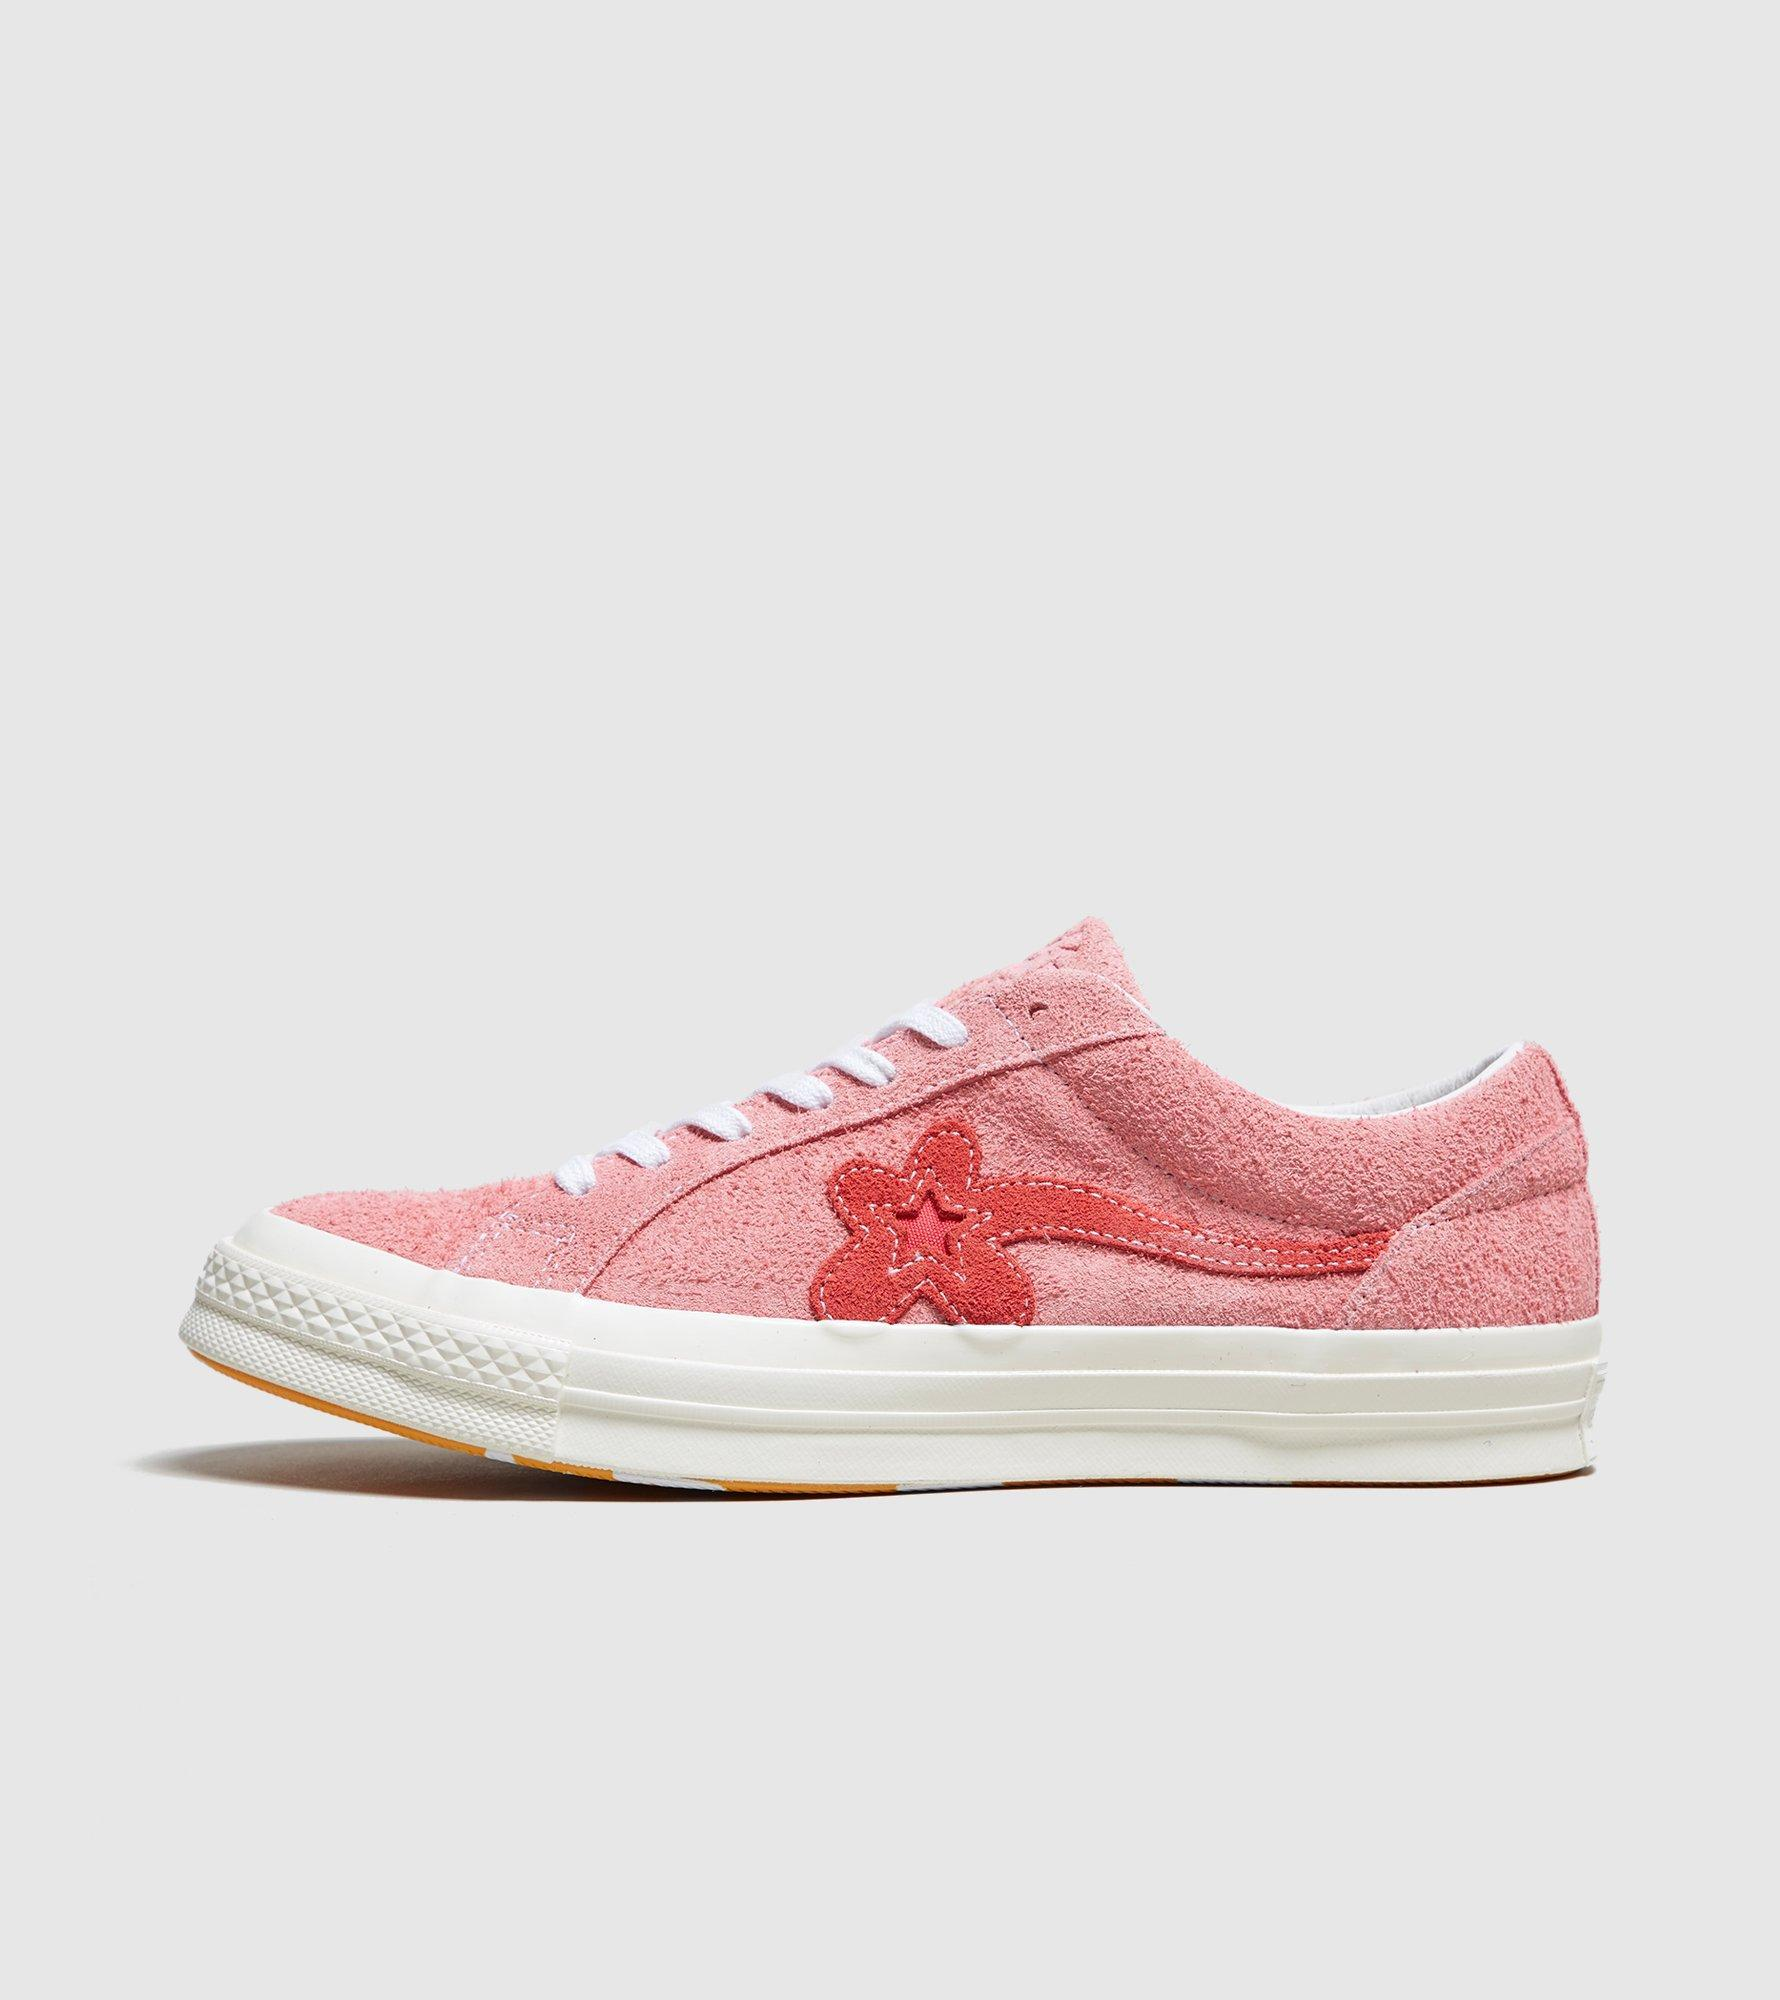 Read more Blue & Pink 6Iw4uhZzxy le FLEUR* Edition 6Iw4uhZzxy 6.1 One Star Sneakers bjyBhI